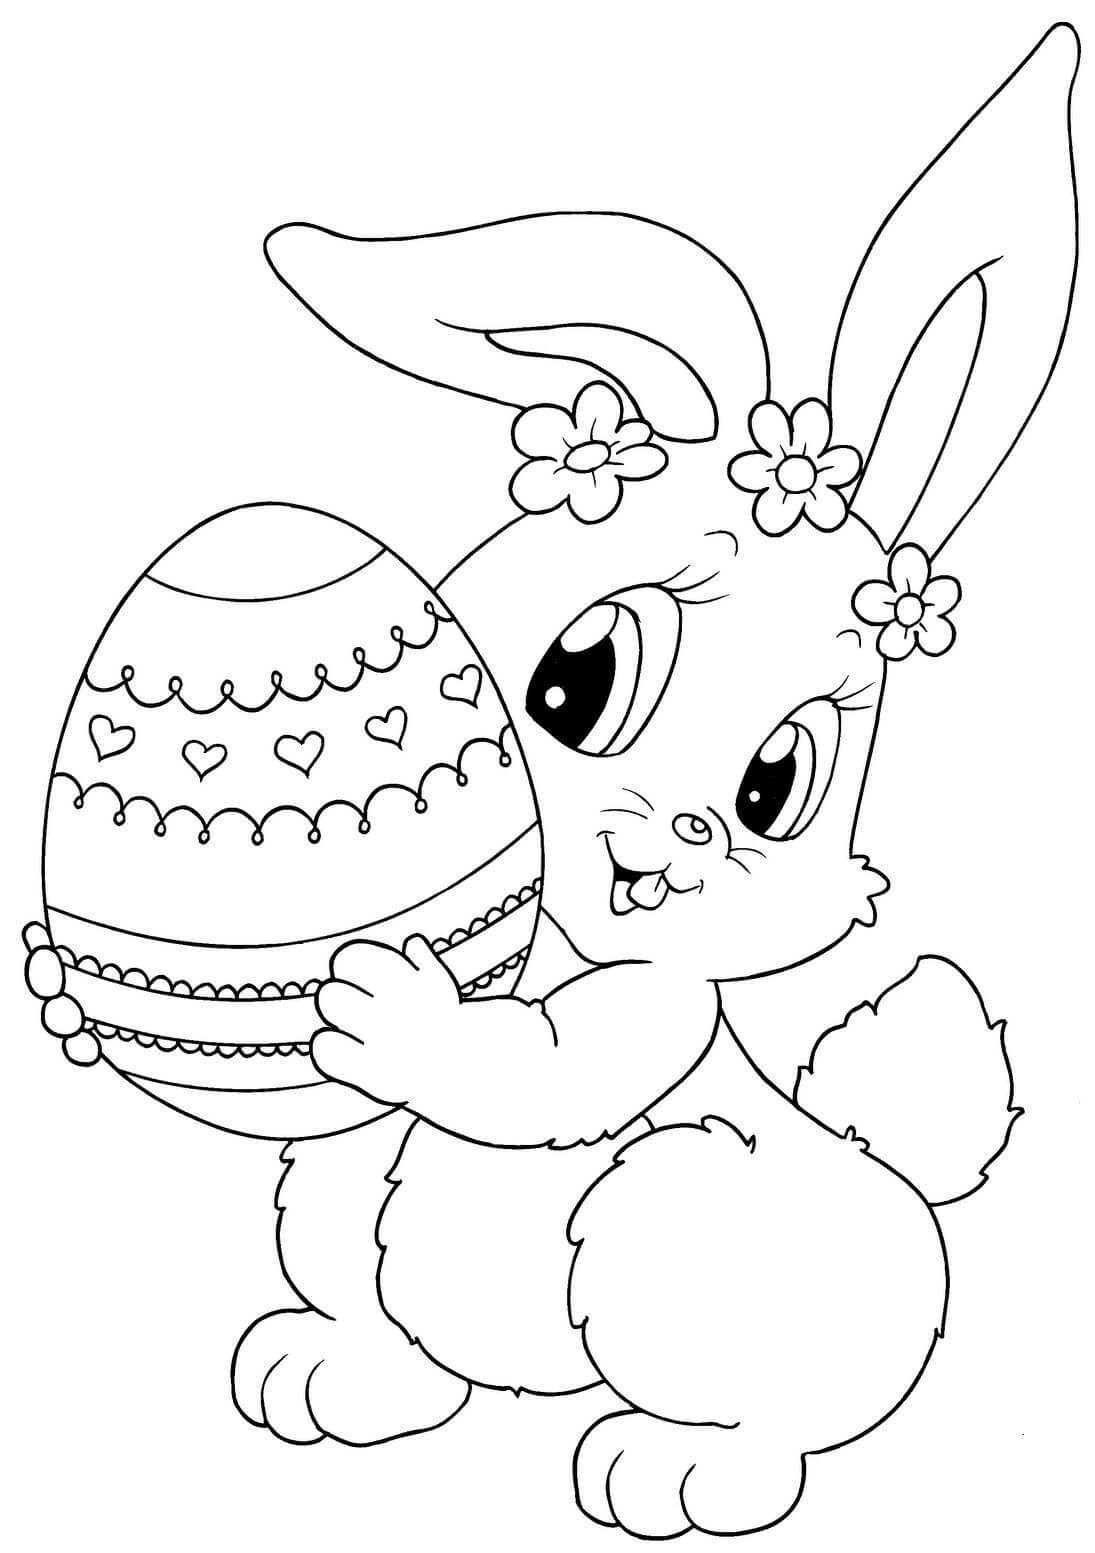 Cute Printable Easter Coloring Pages